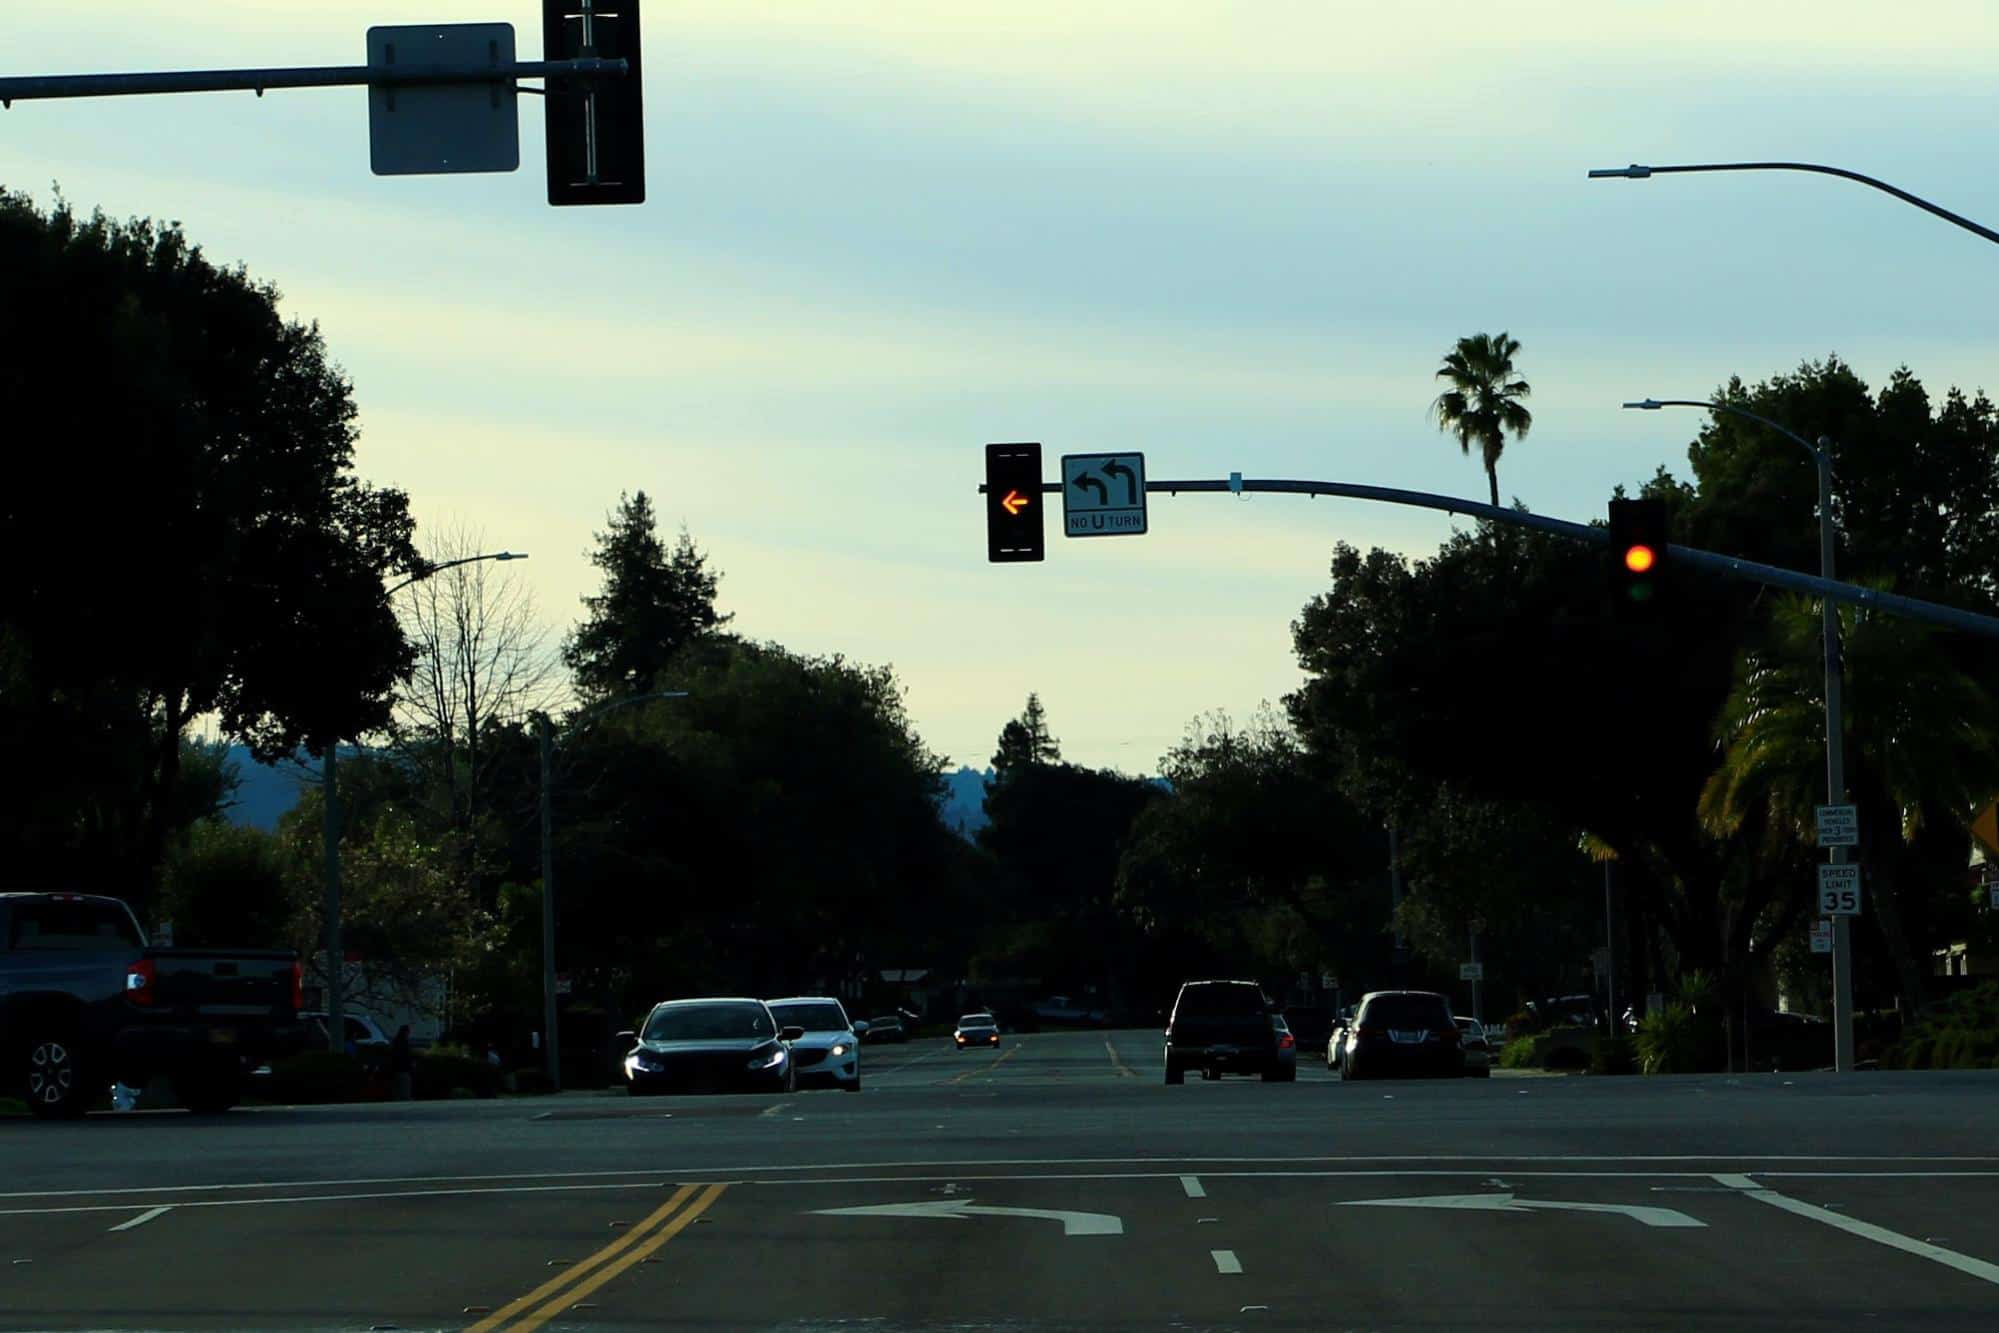 intersection with yellow lights